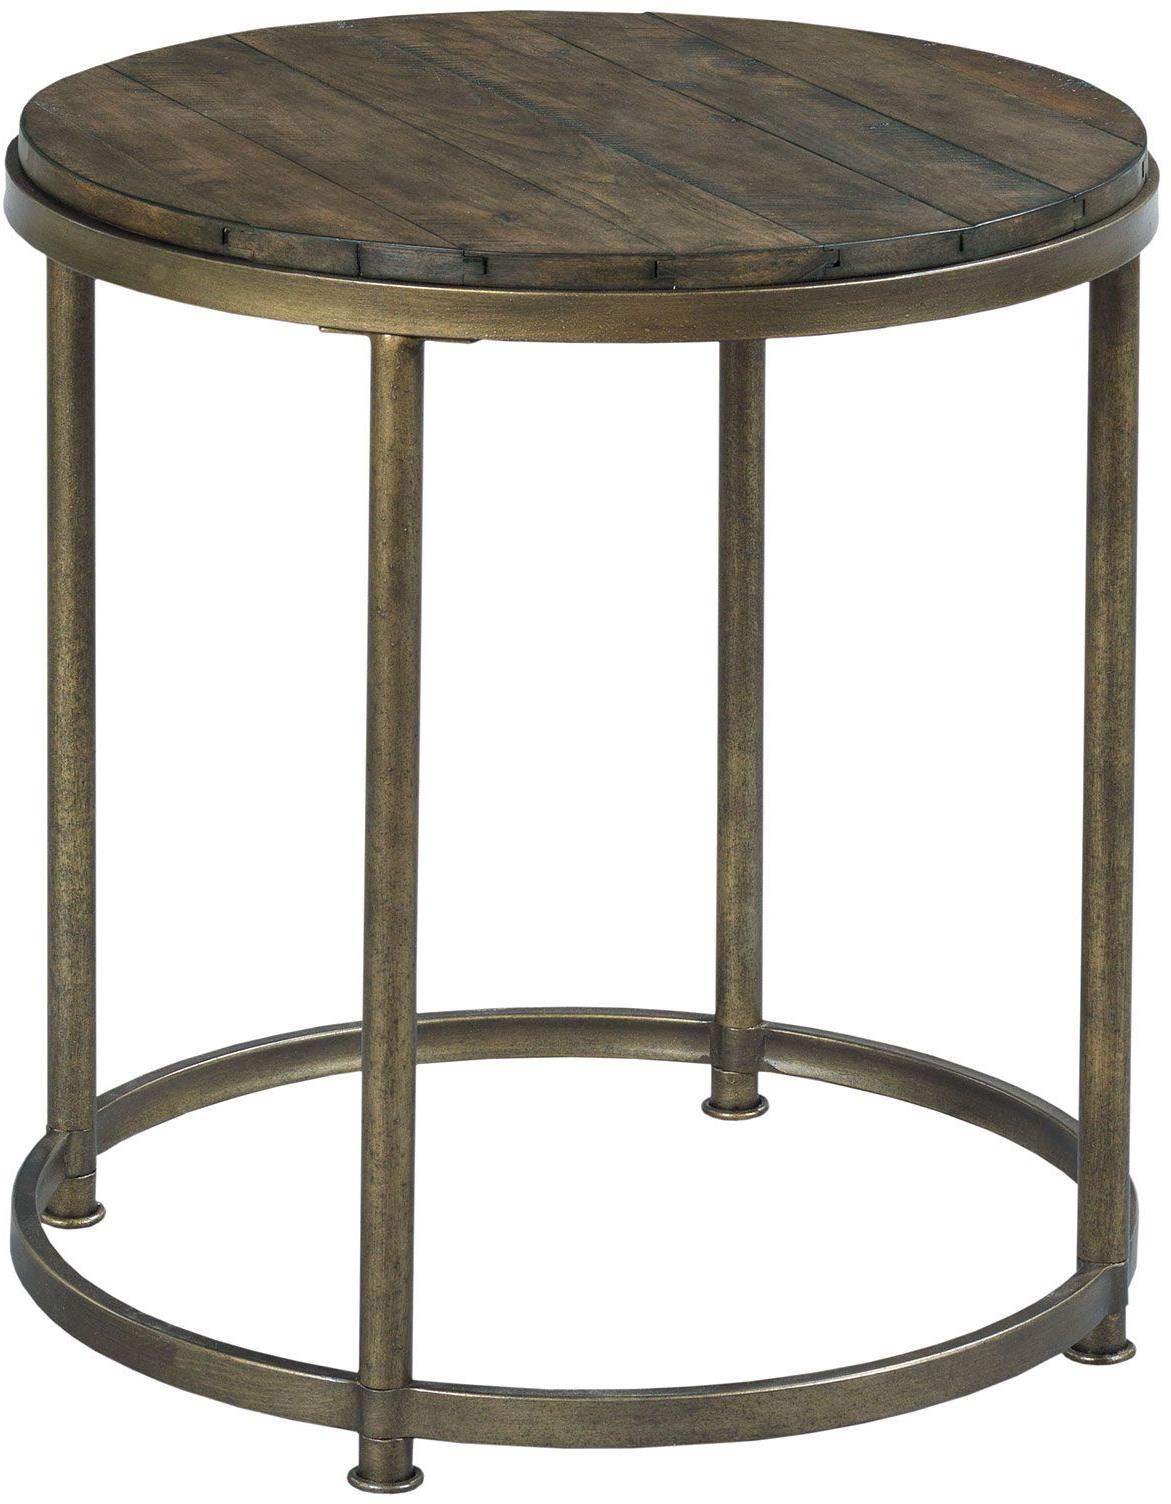 Hammary leone round end table with antique brass base for Round end tables